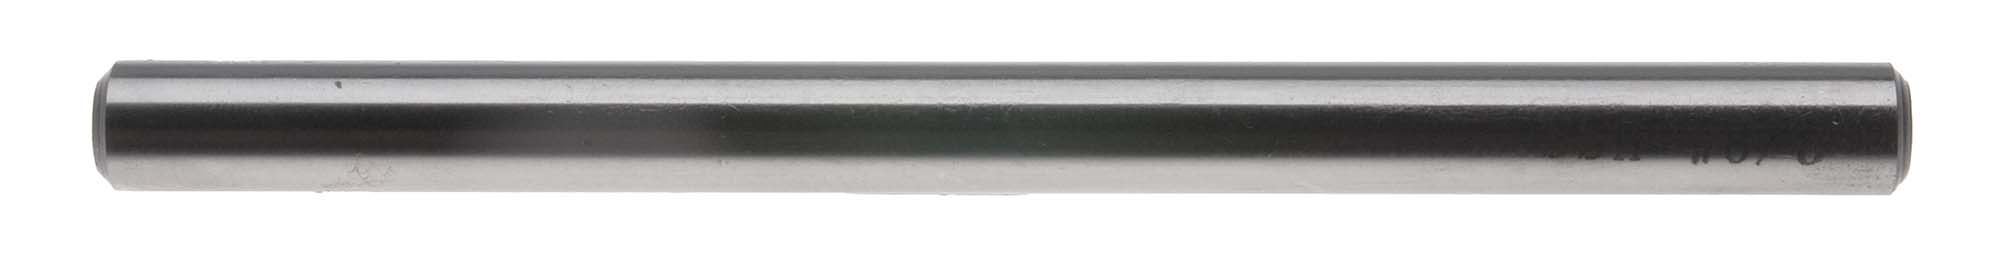 "#69 (.0292"") Jobber Length Drill Blank , High Speed Steel"